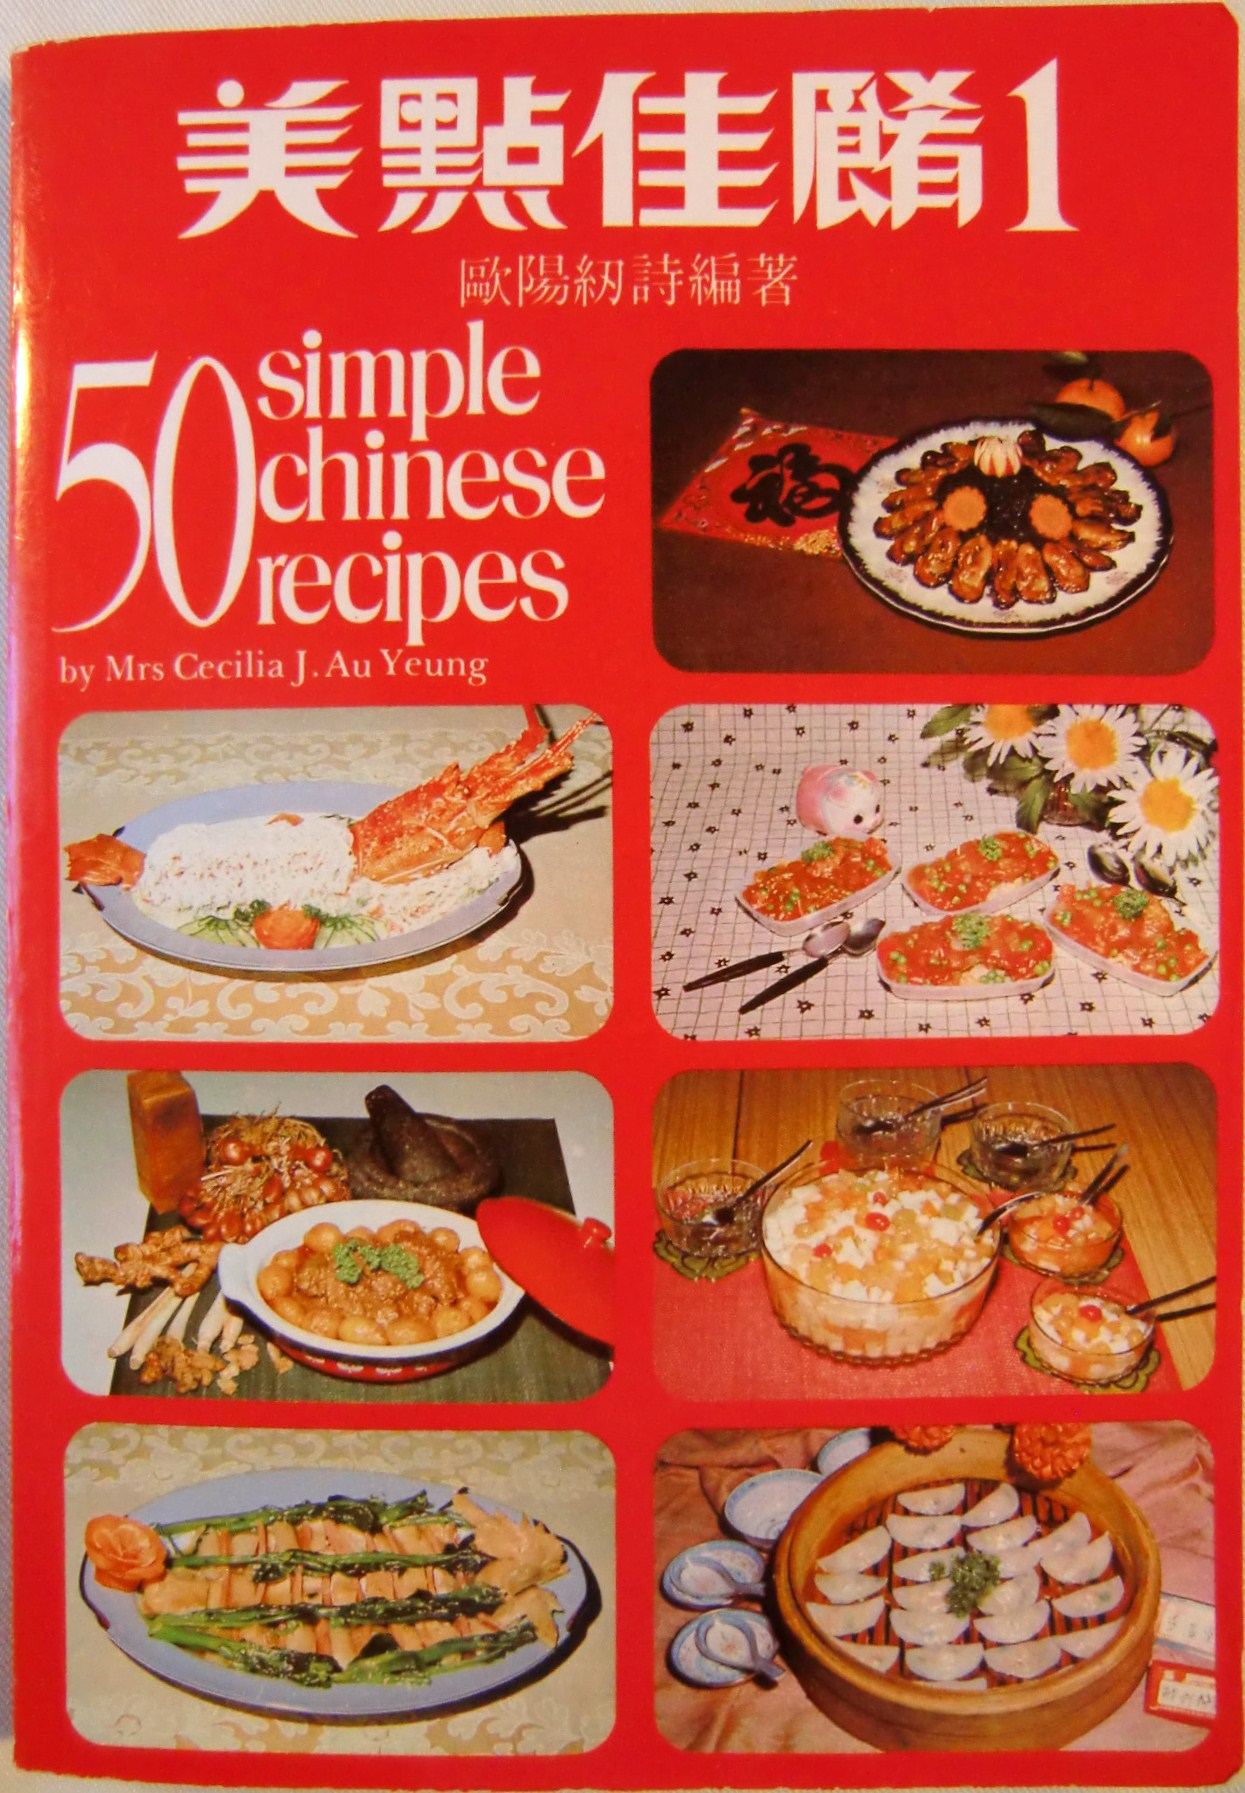 50 simple Chinese recipes